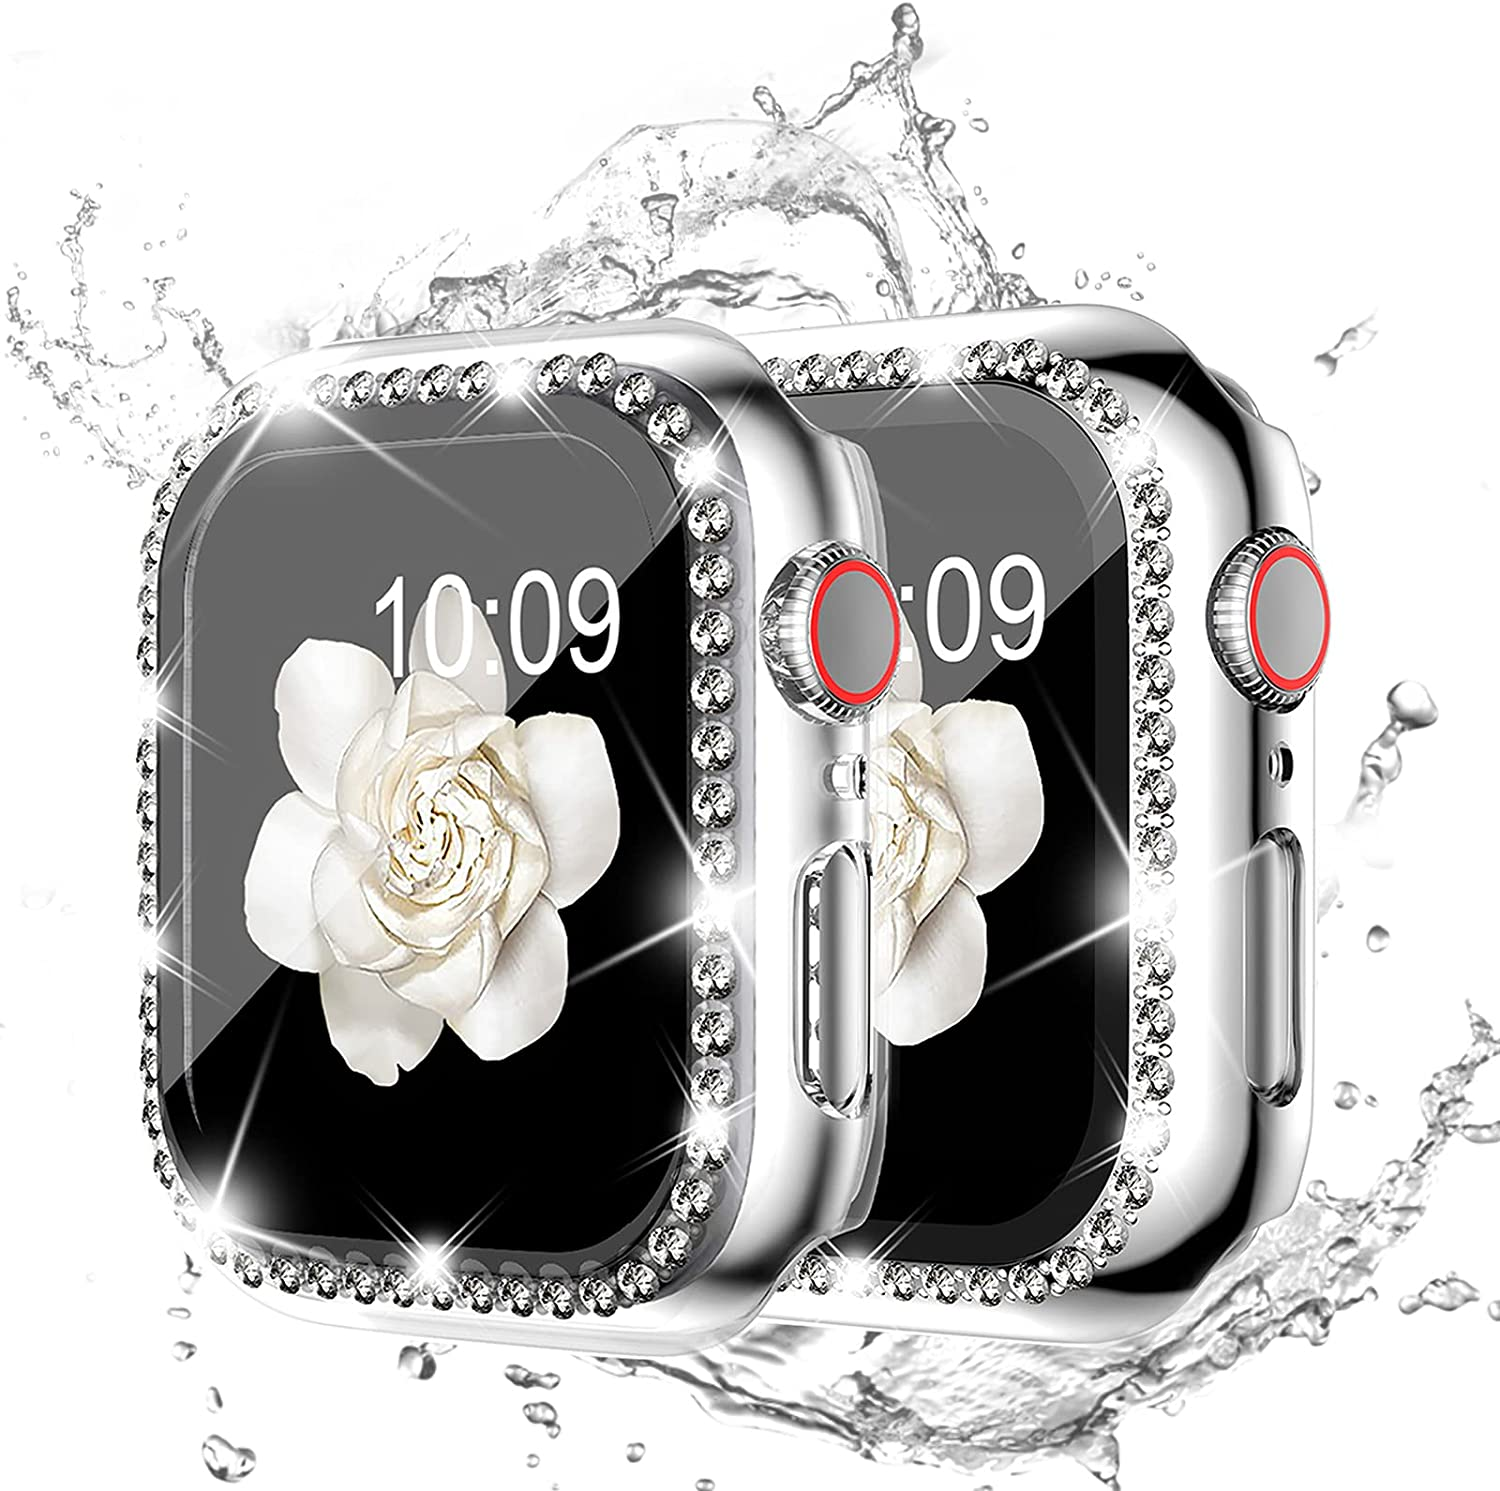 Selling rankings DABAOZA Bling trust Case with Screen Compatible for Wa Apple protector